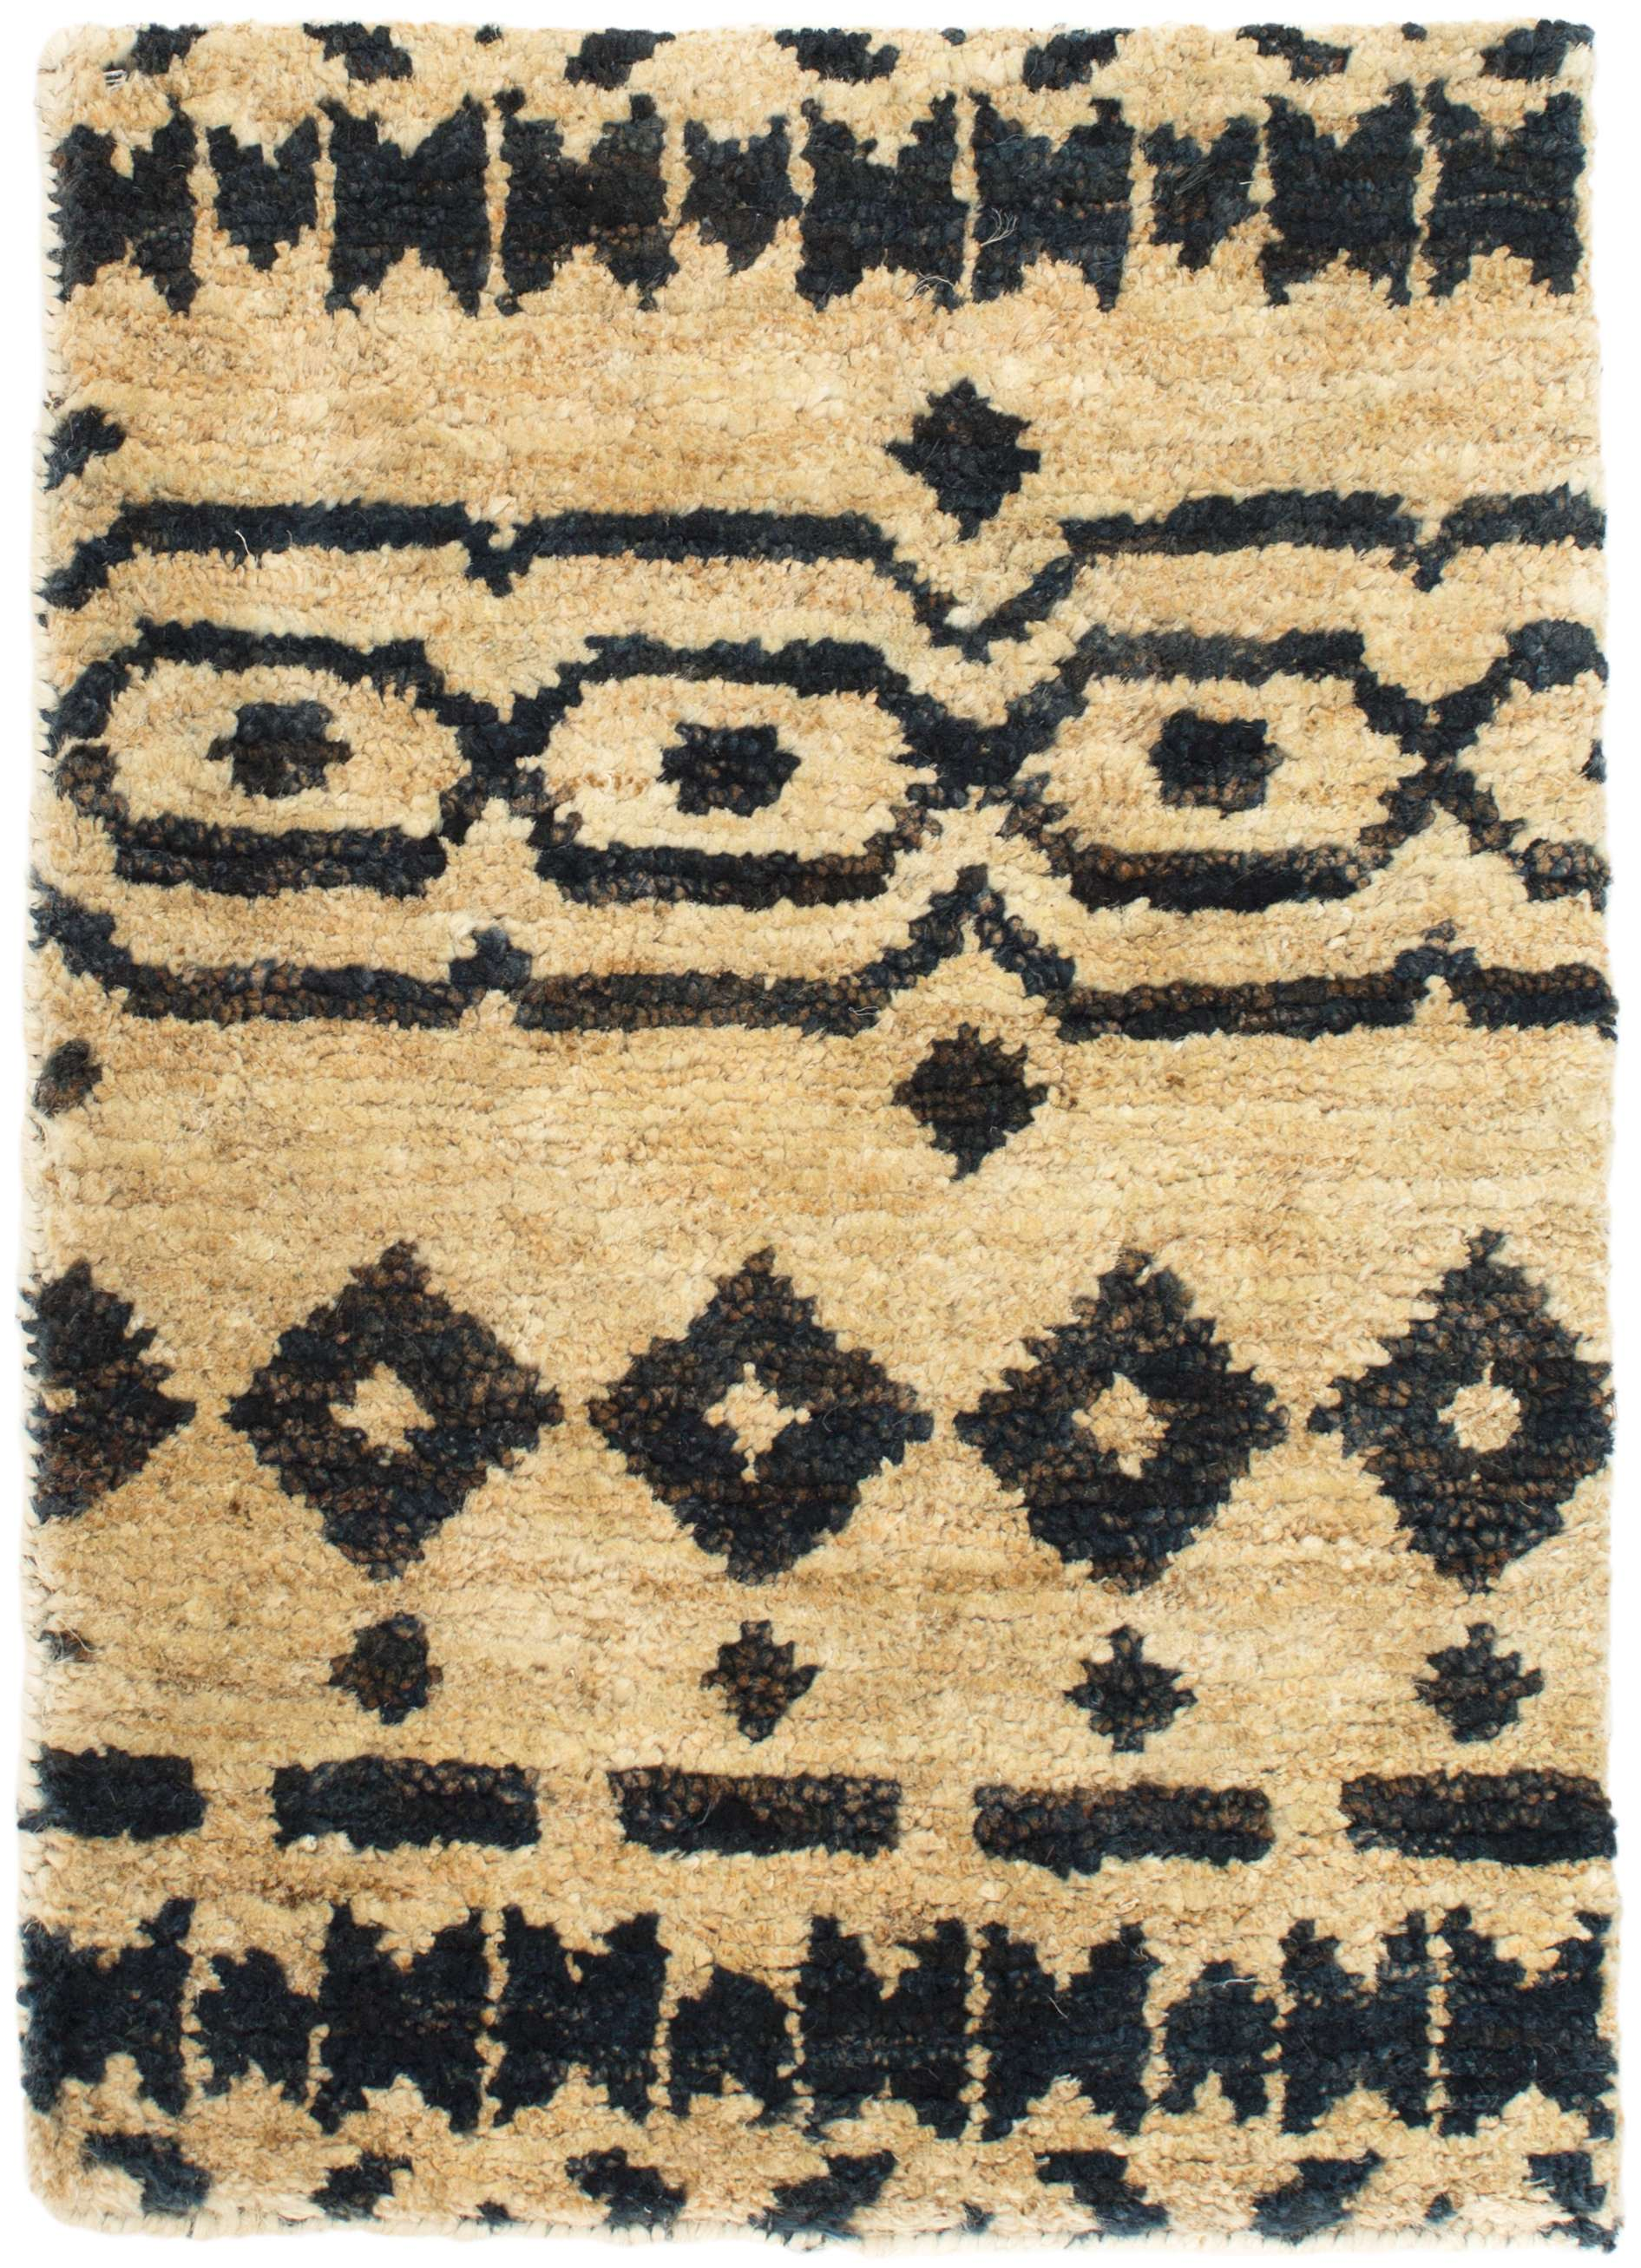 Jute Hand Knotted Rug